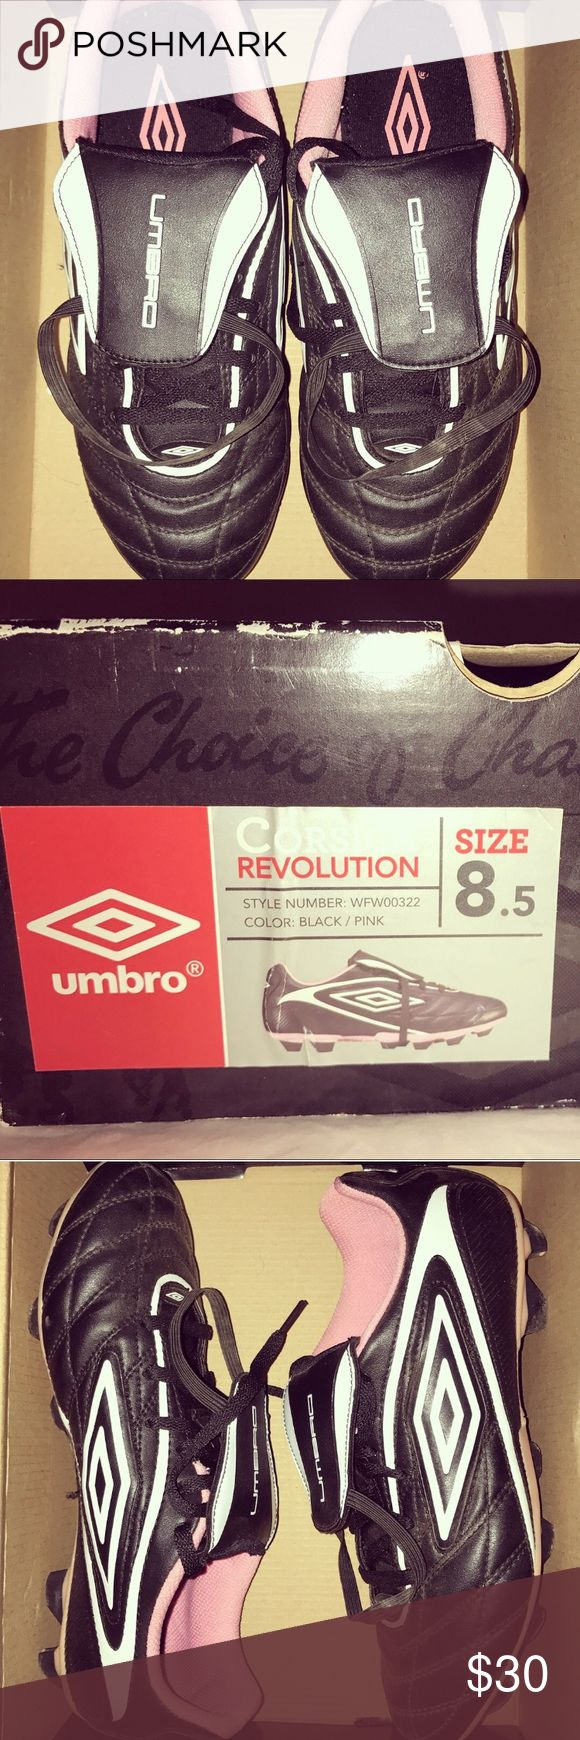 UMBRO Girl's Corsica Revolution Soccer Cleats These black/pink soccer cleats were lightly worn, in great condition and includes original box. They are very comfortable and good for other sports as well. Feel free to ask more questions and make an offer. Umbro Shoes Sneakers